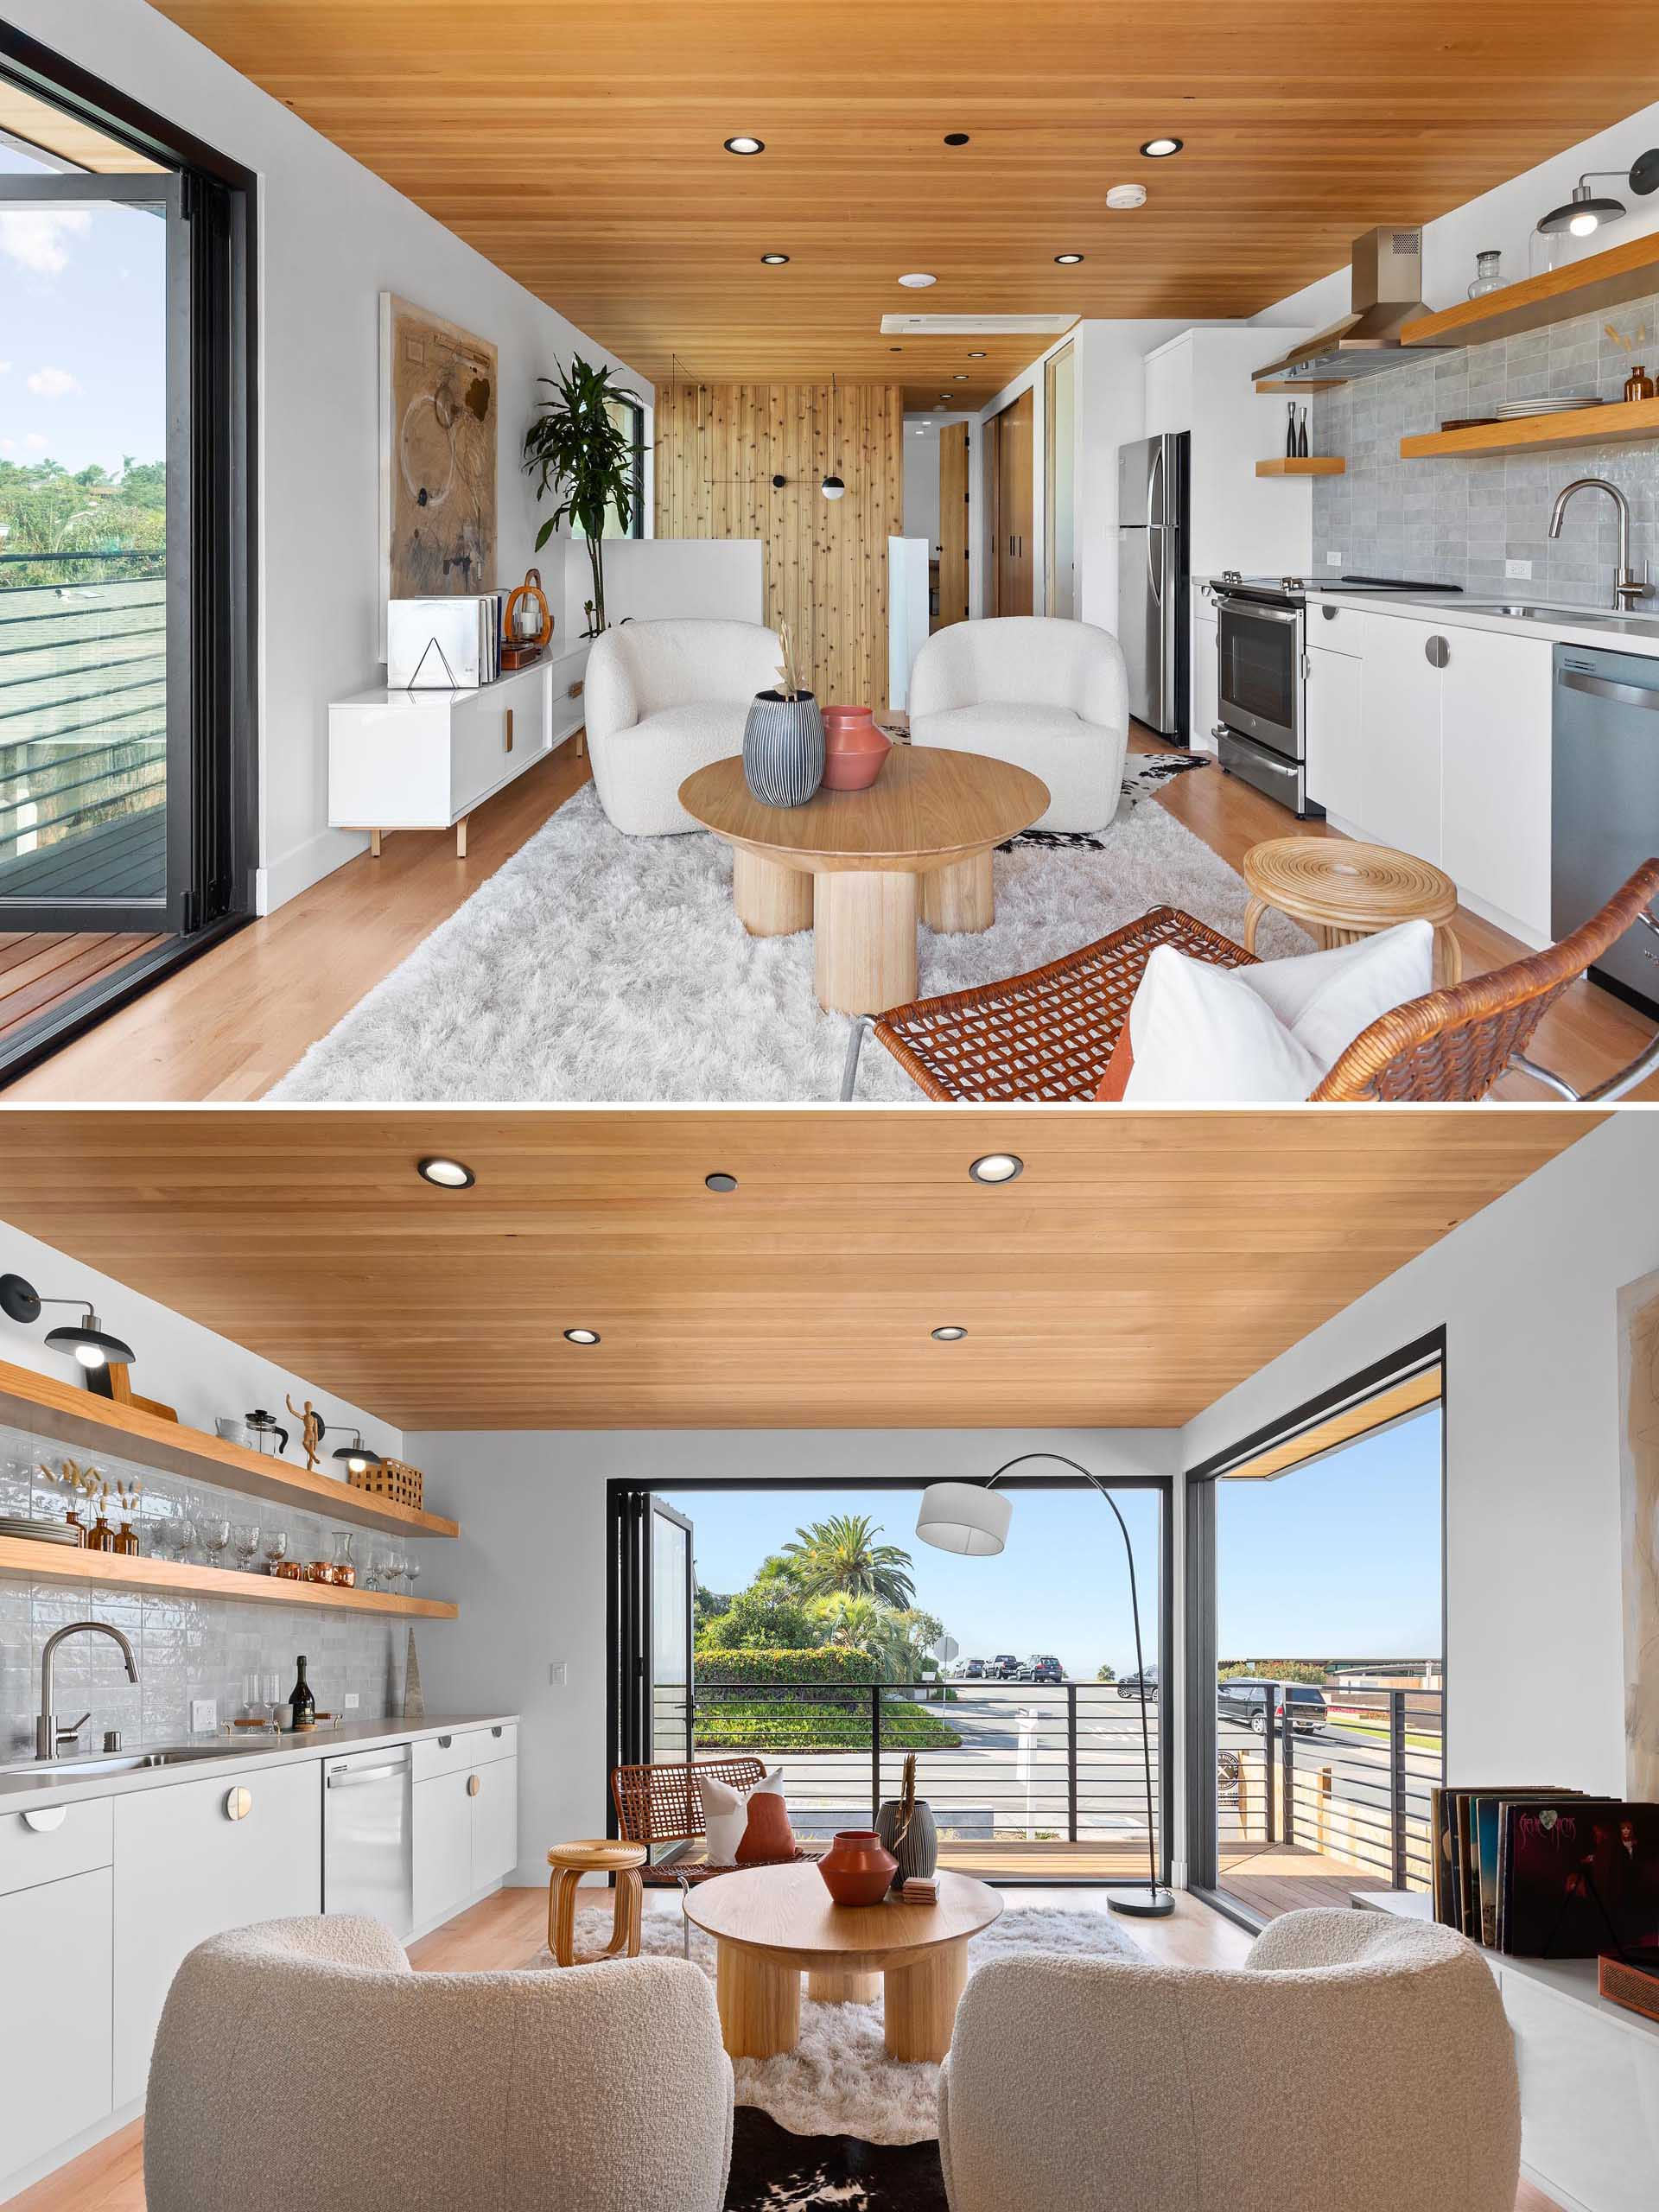 A modern accessory dwelling unit (ADU) with an open plan living room and linear kitchen.